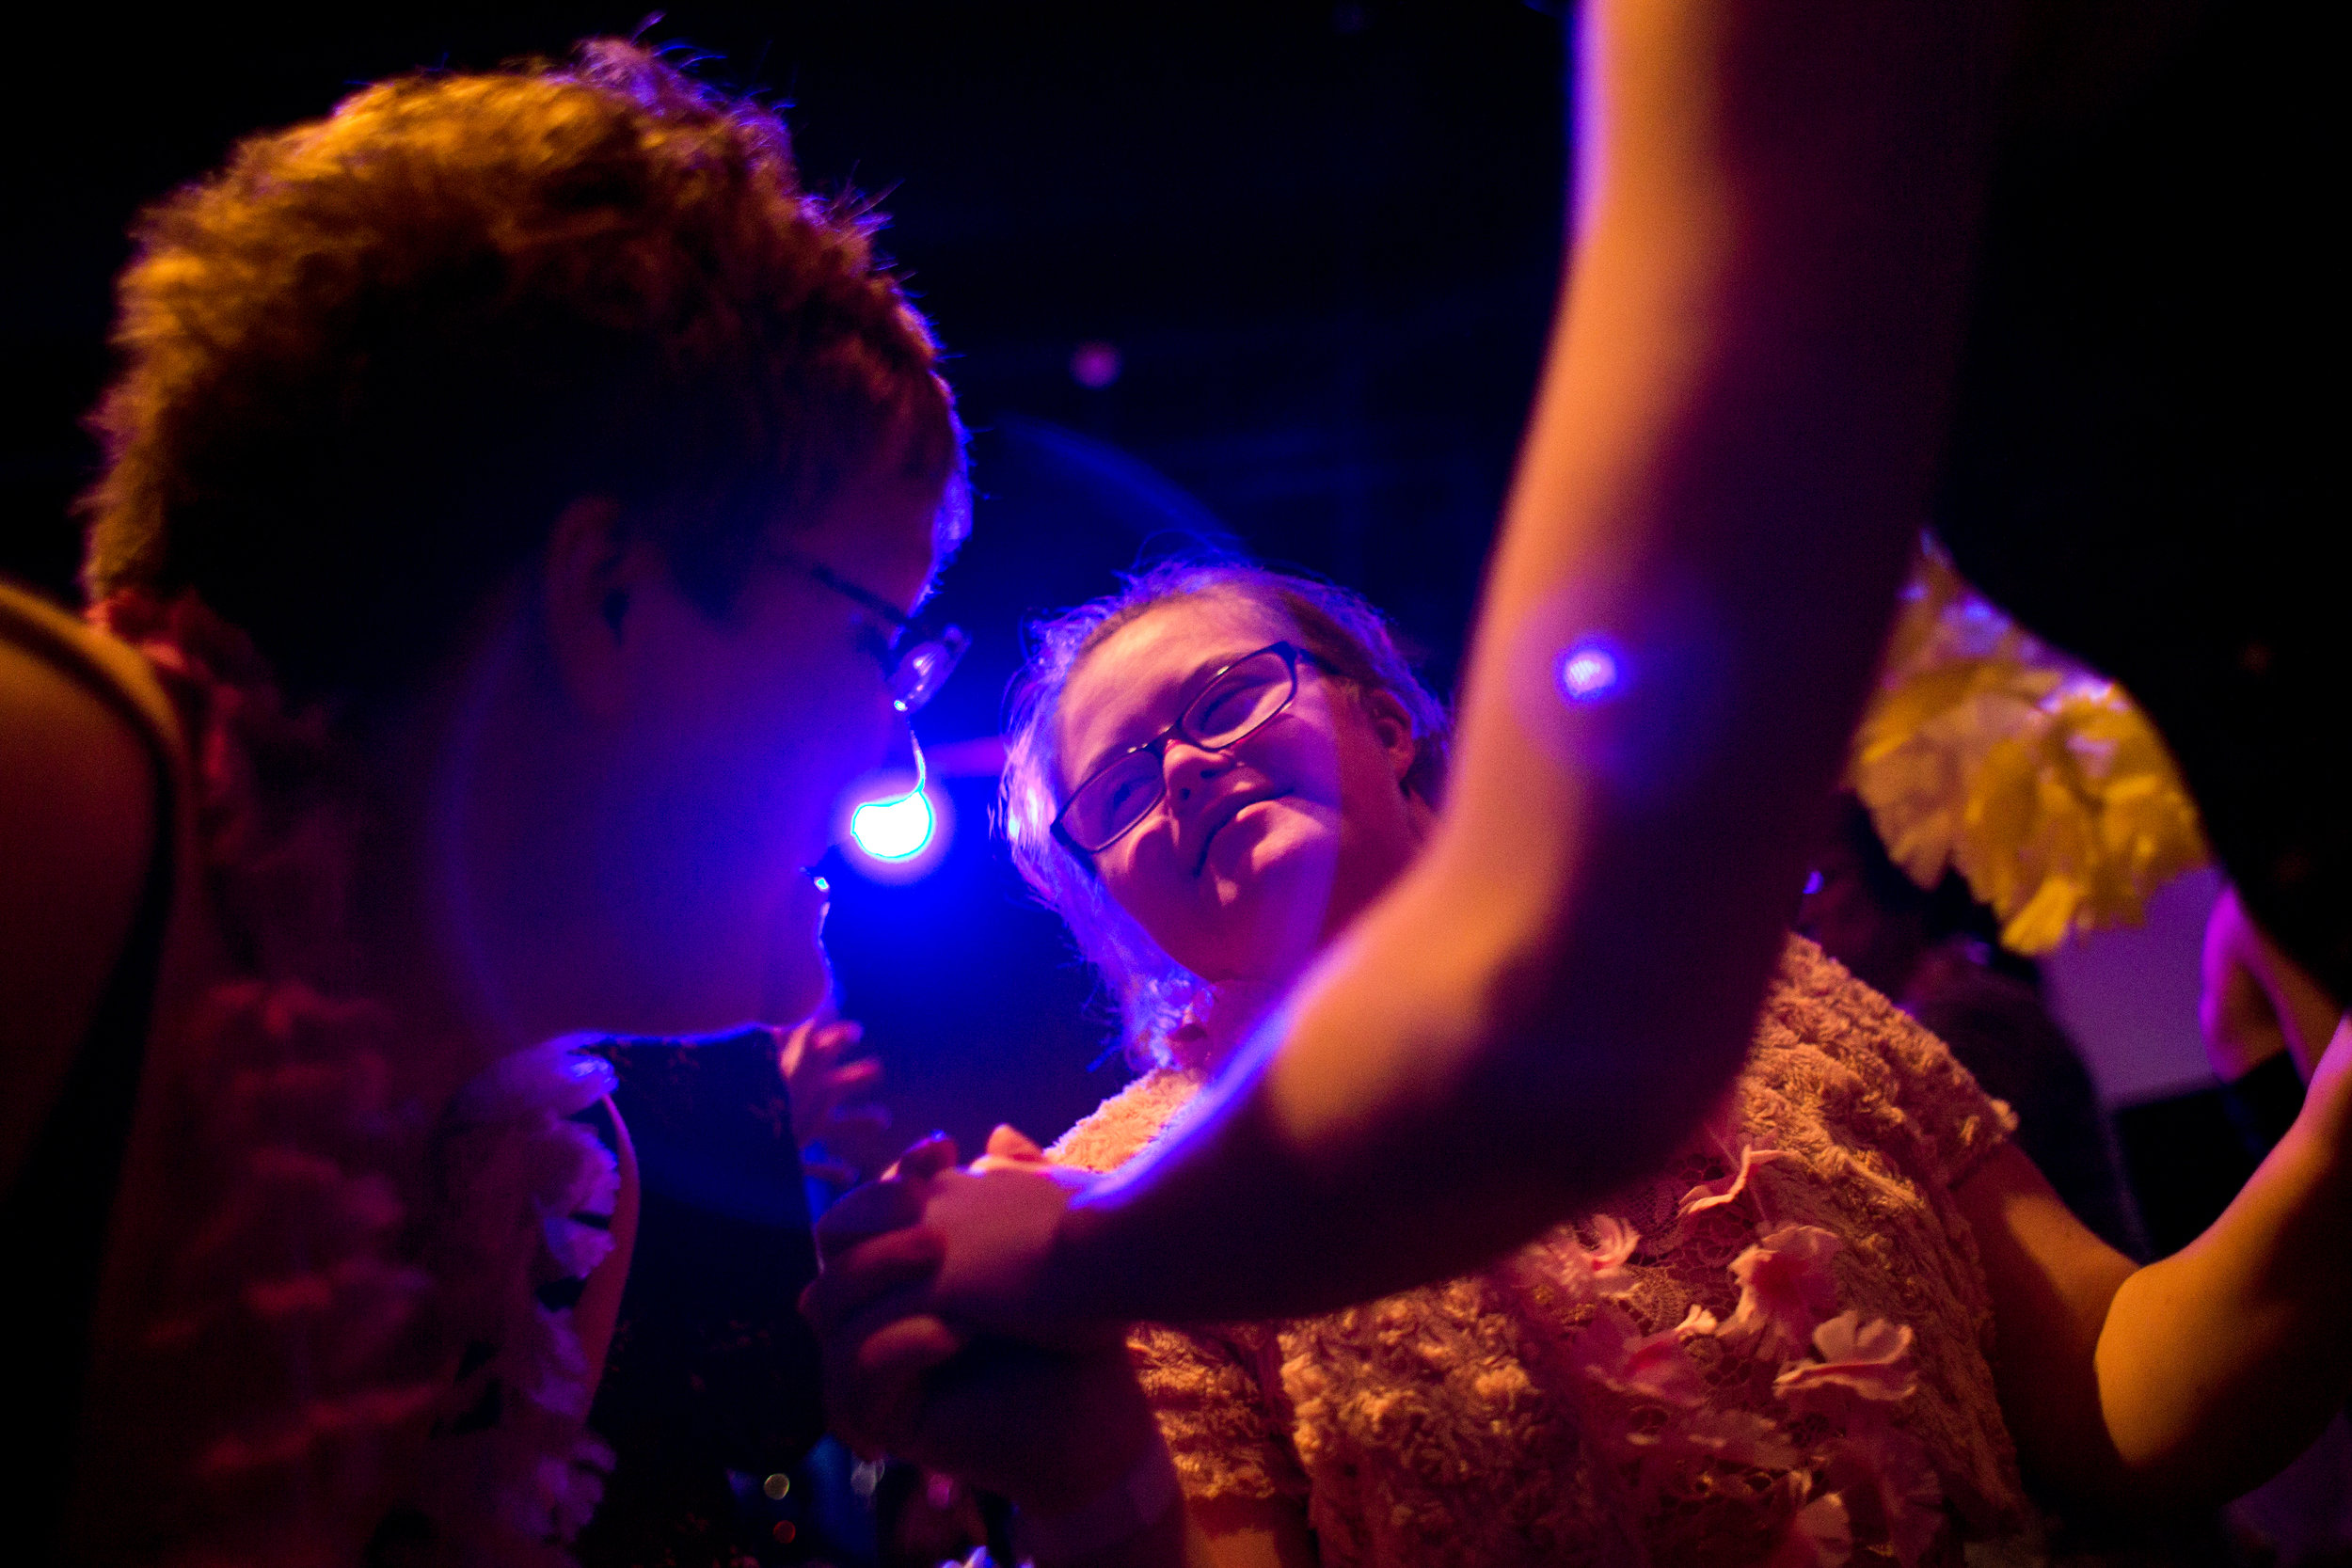 Juanita Overton of Dubois talked to Erin O'Neil while she danced with her longtime best friend Lydia Shepherd of Jasper during Friday night's Night to Shine event at Redemption Christian Church in Jasper. The Tim Tebow Foundation sponsored the prom-like event for children with special needs. The event included dinner, dancing, karaoke, a photo booth and shaved ice for attendees to enjoy.